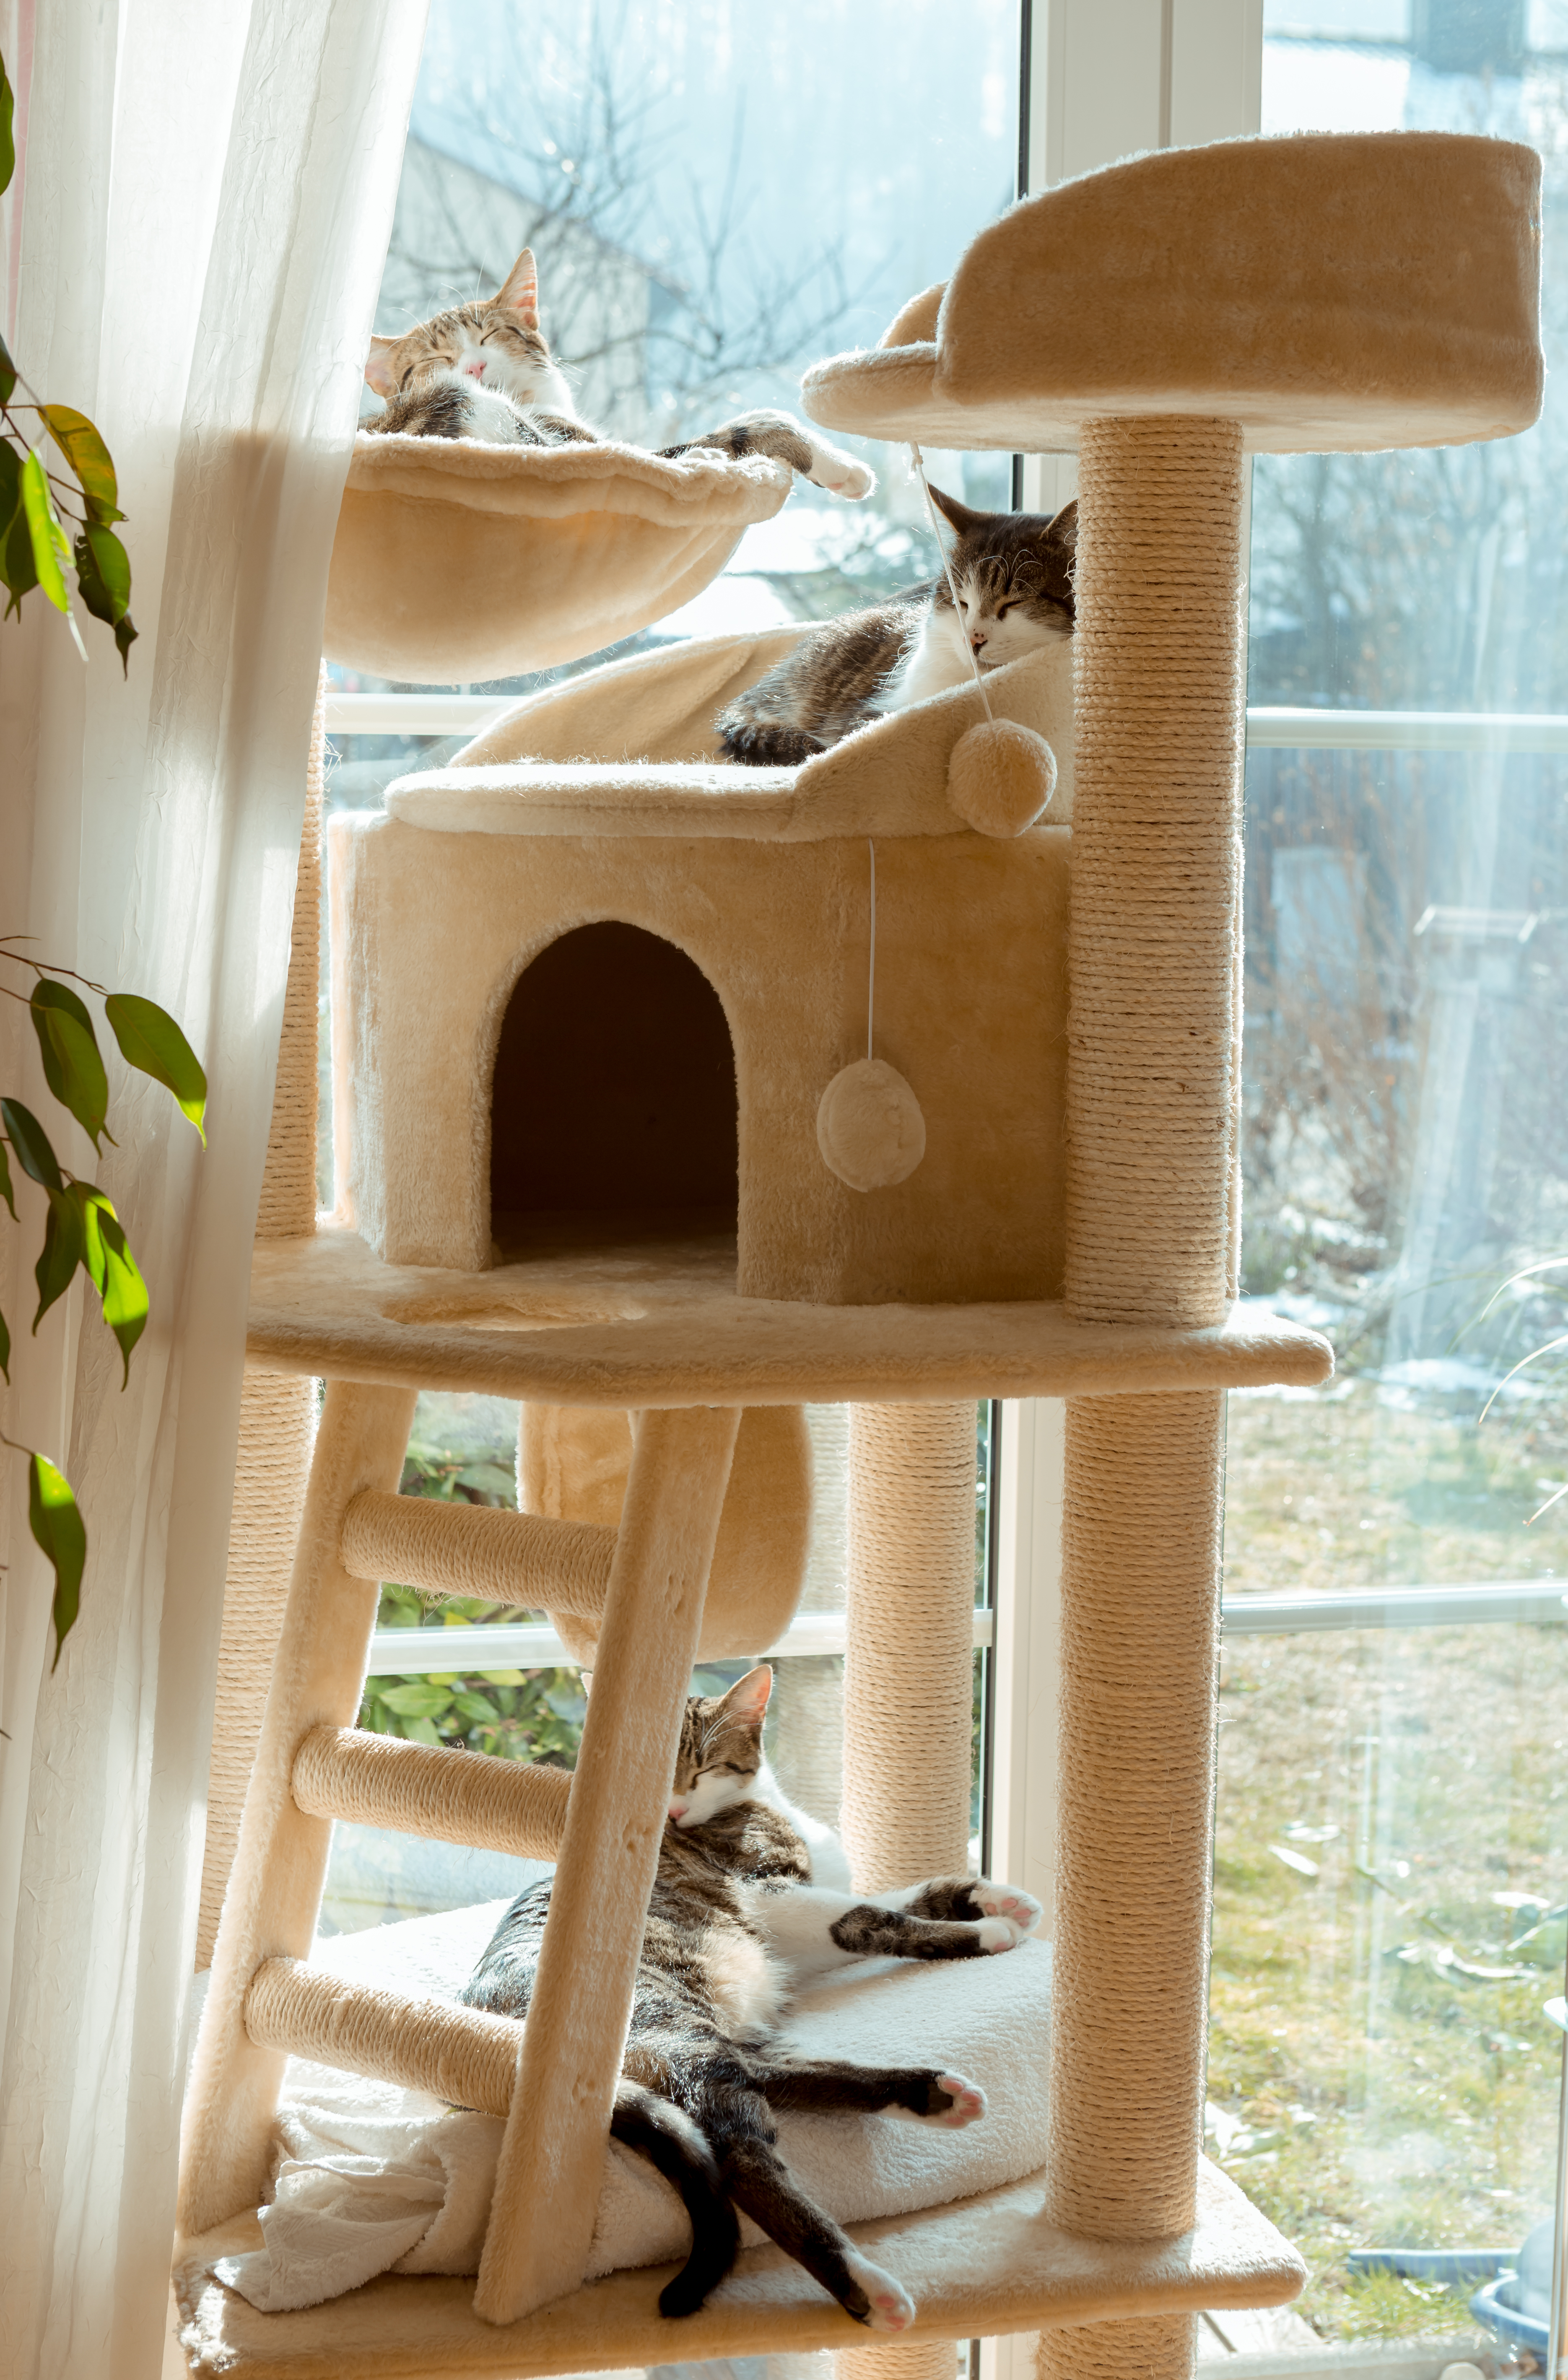 Two Cats Sleep On A DIY Cat Tower